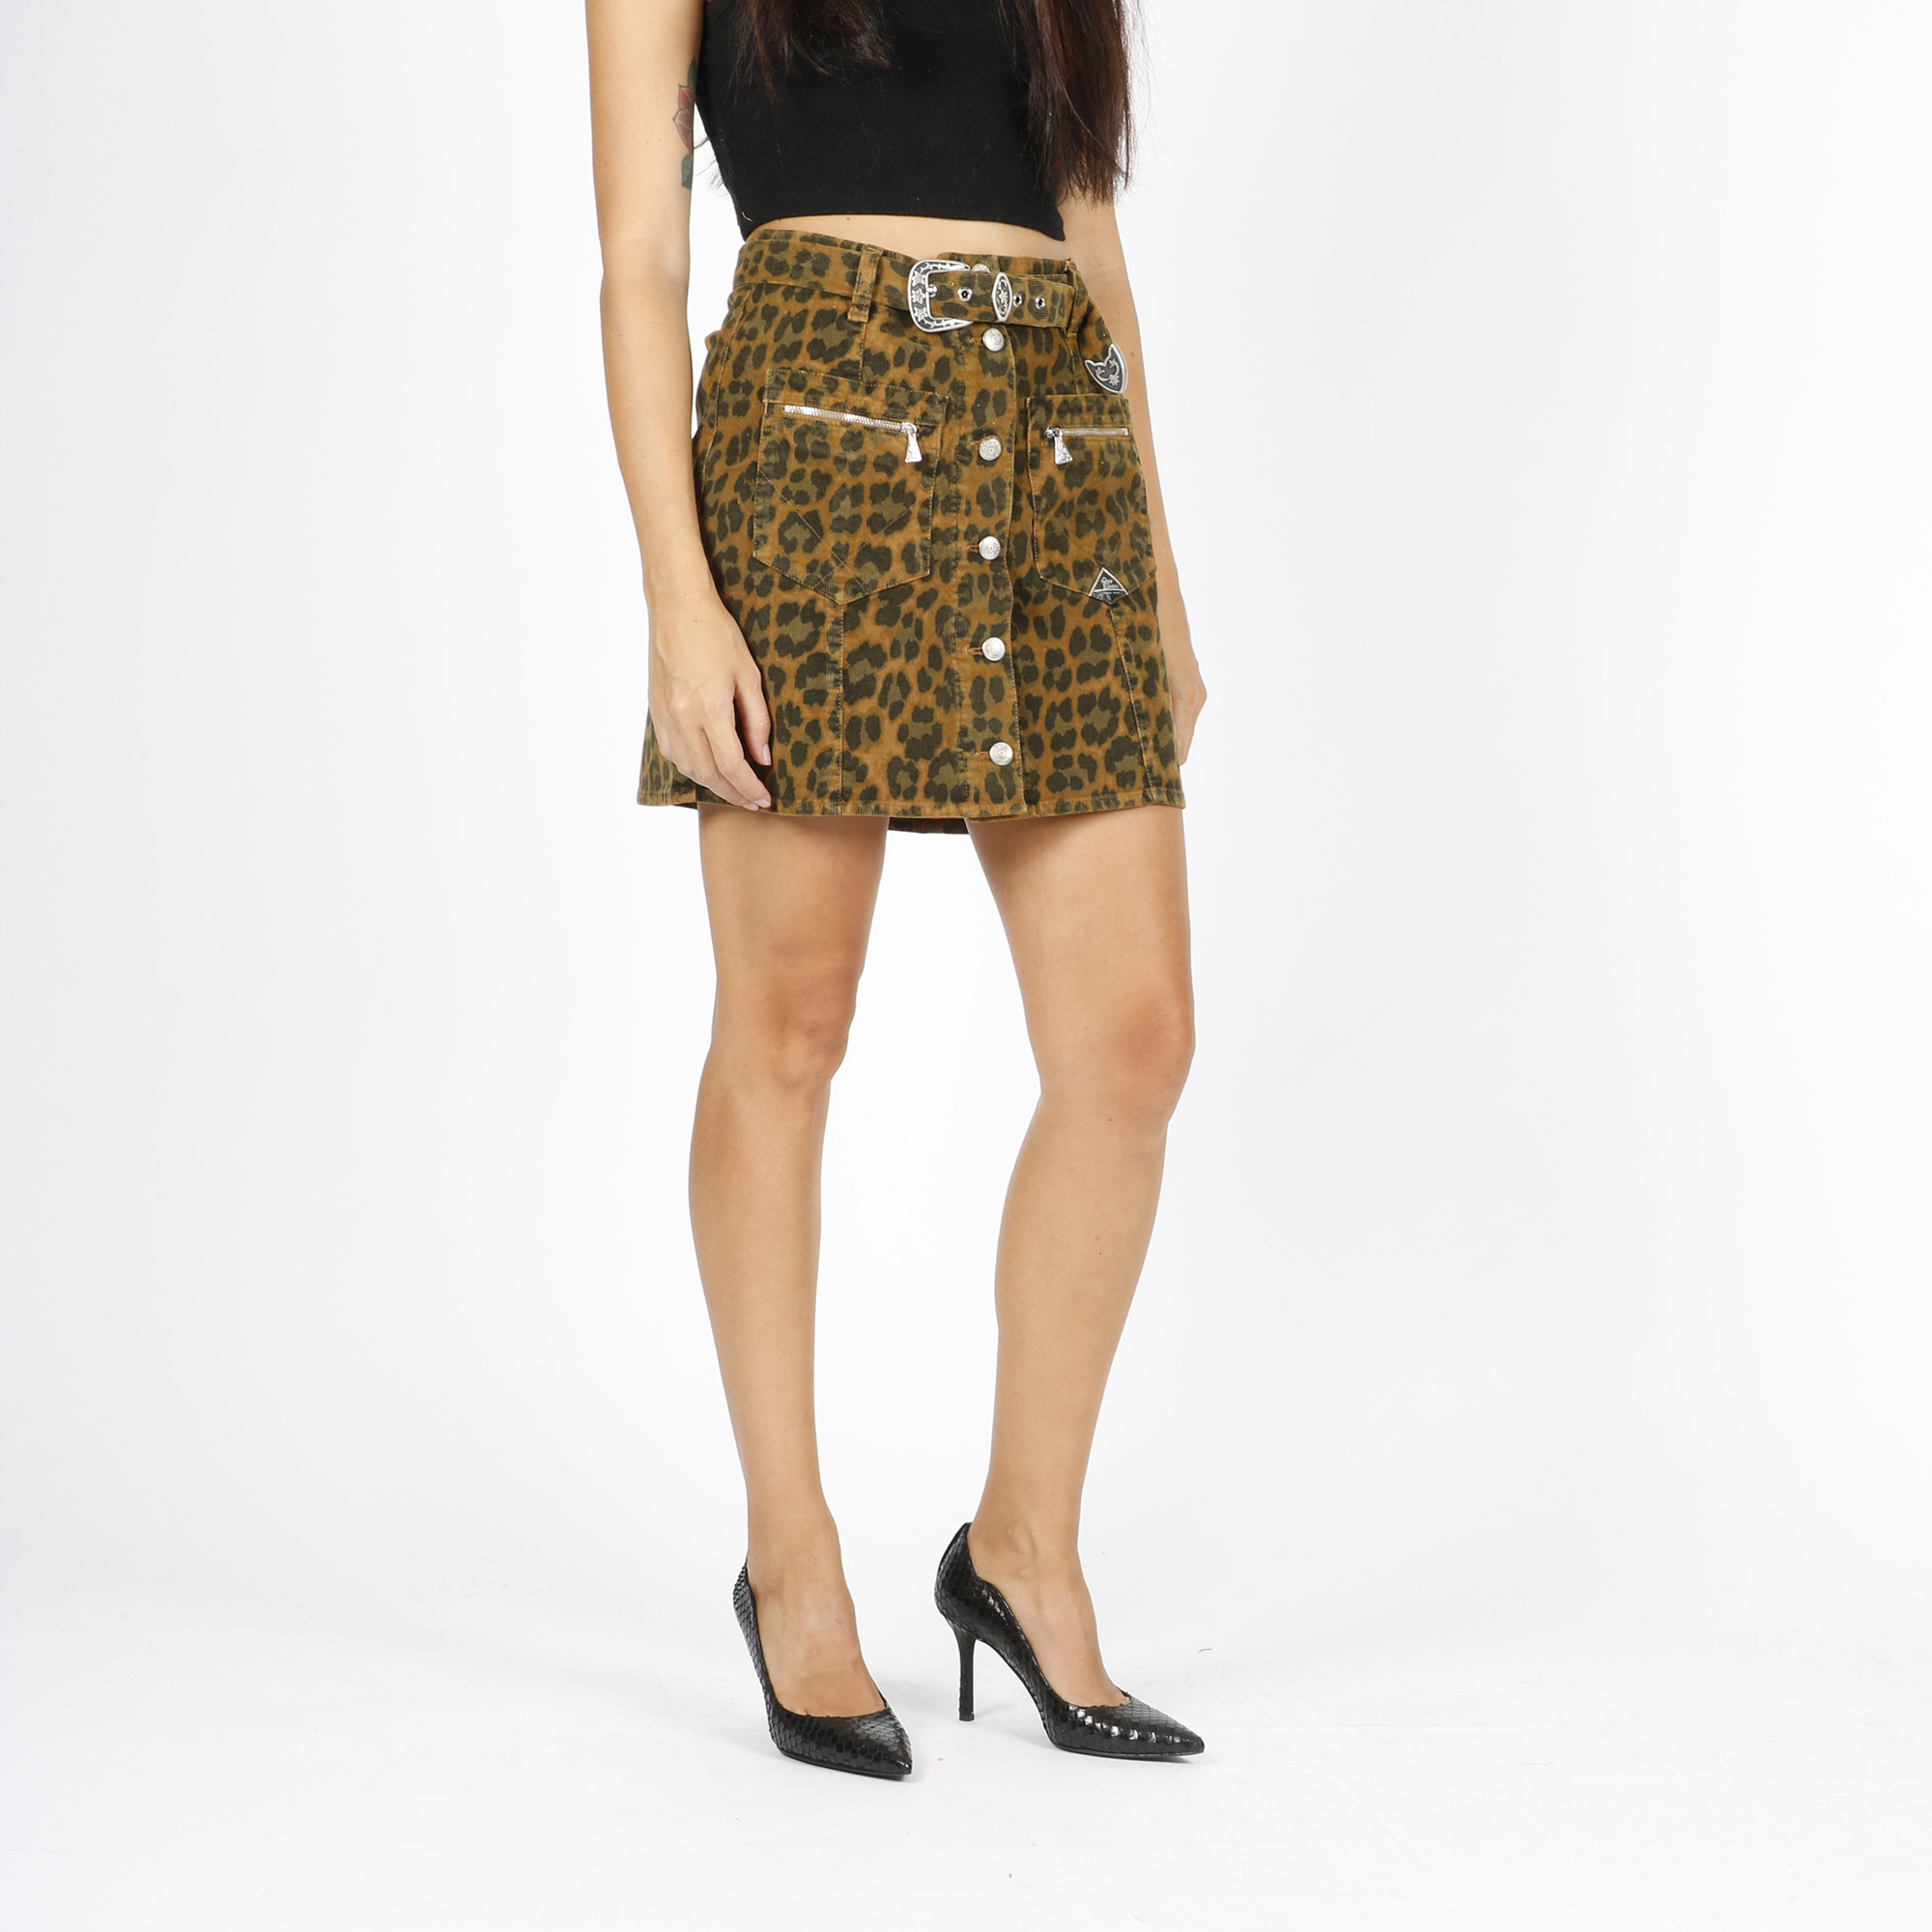 Skirt elyn maculato - Marrore